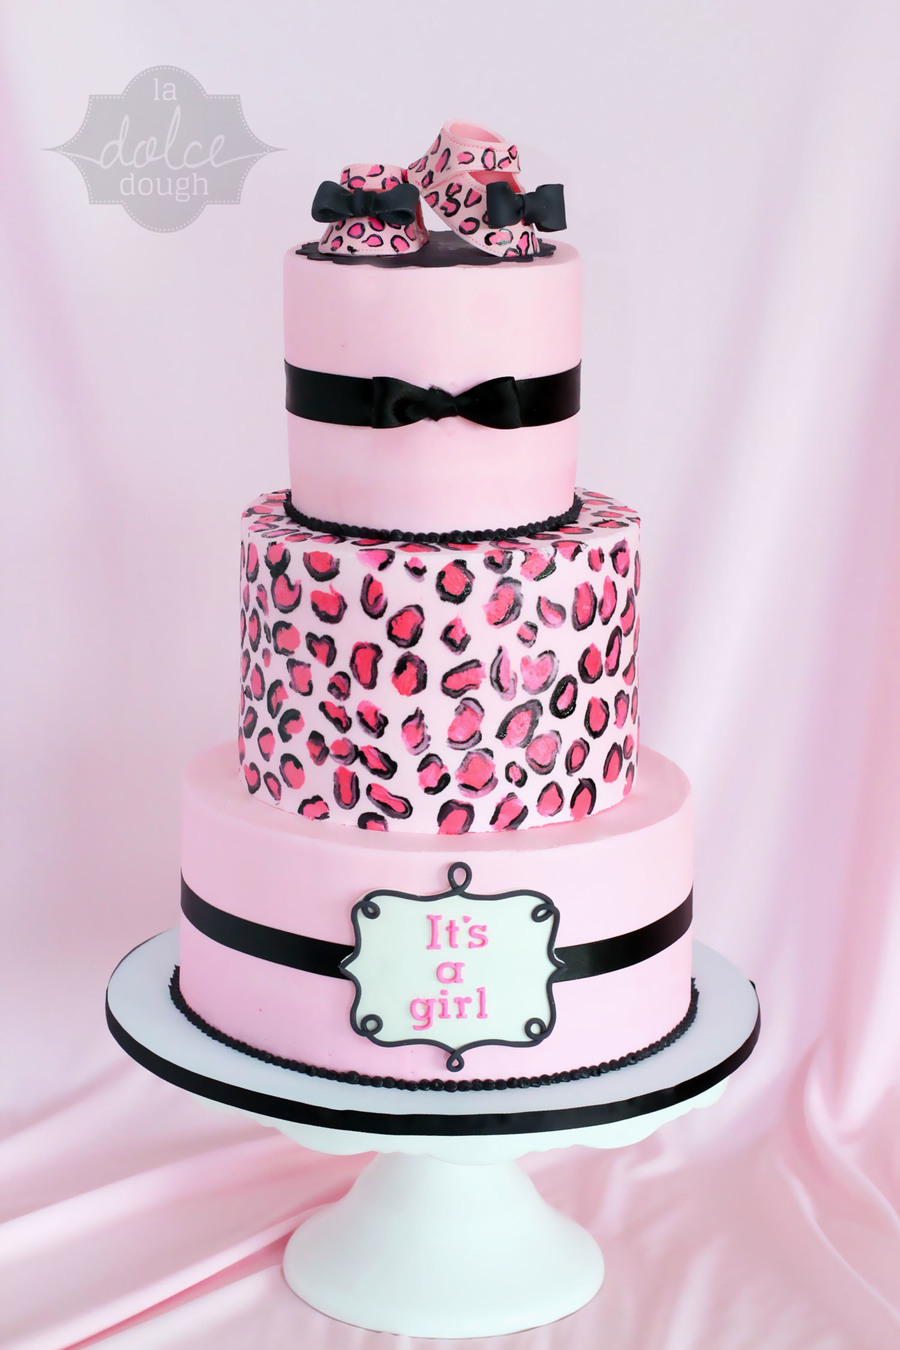 900_882490tB0K_leopard-cheetah-baby-shower-cake-its-a-girl Pink Safari Baby Shower Cake